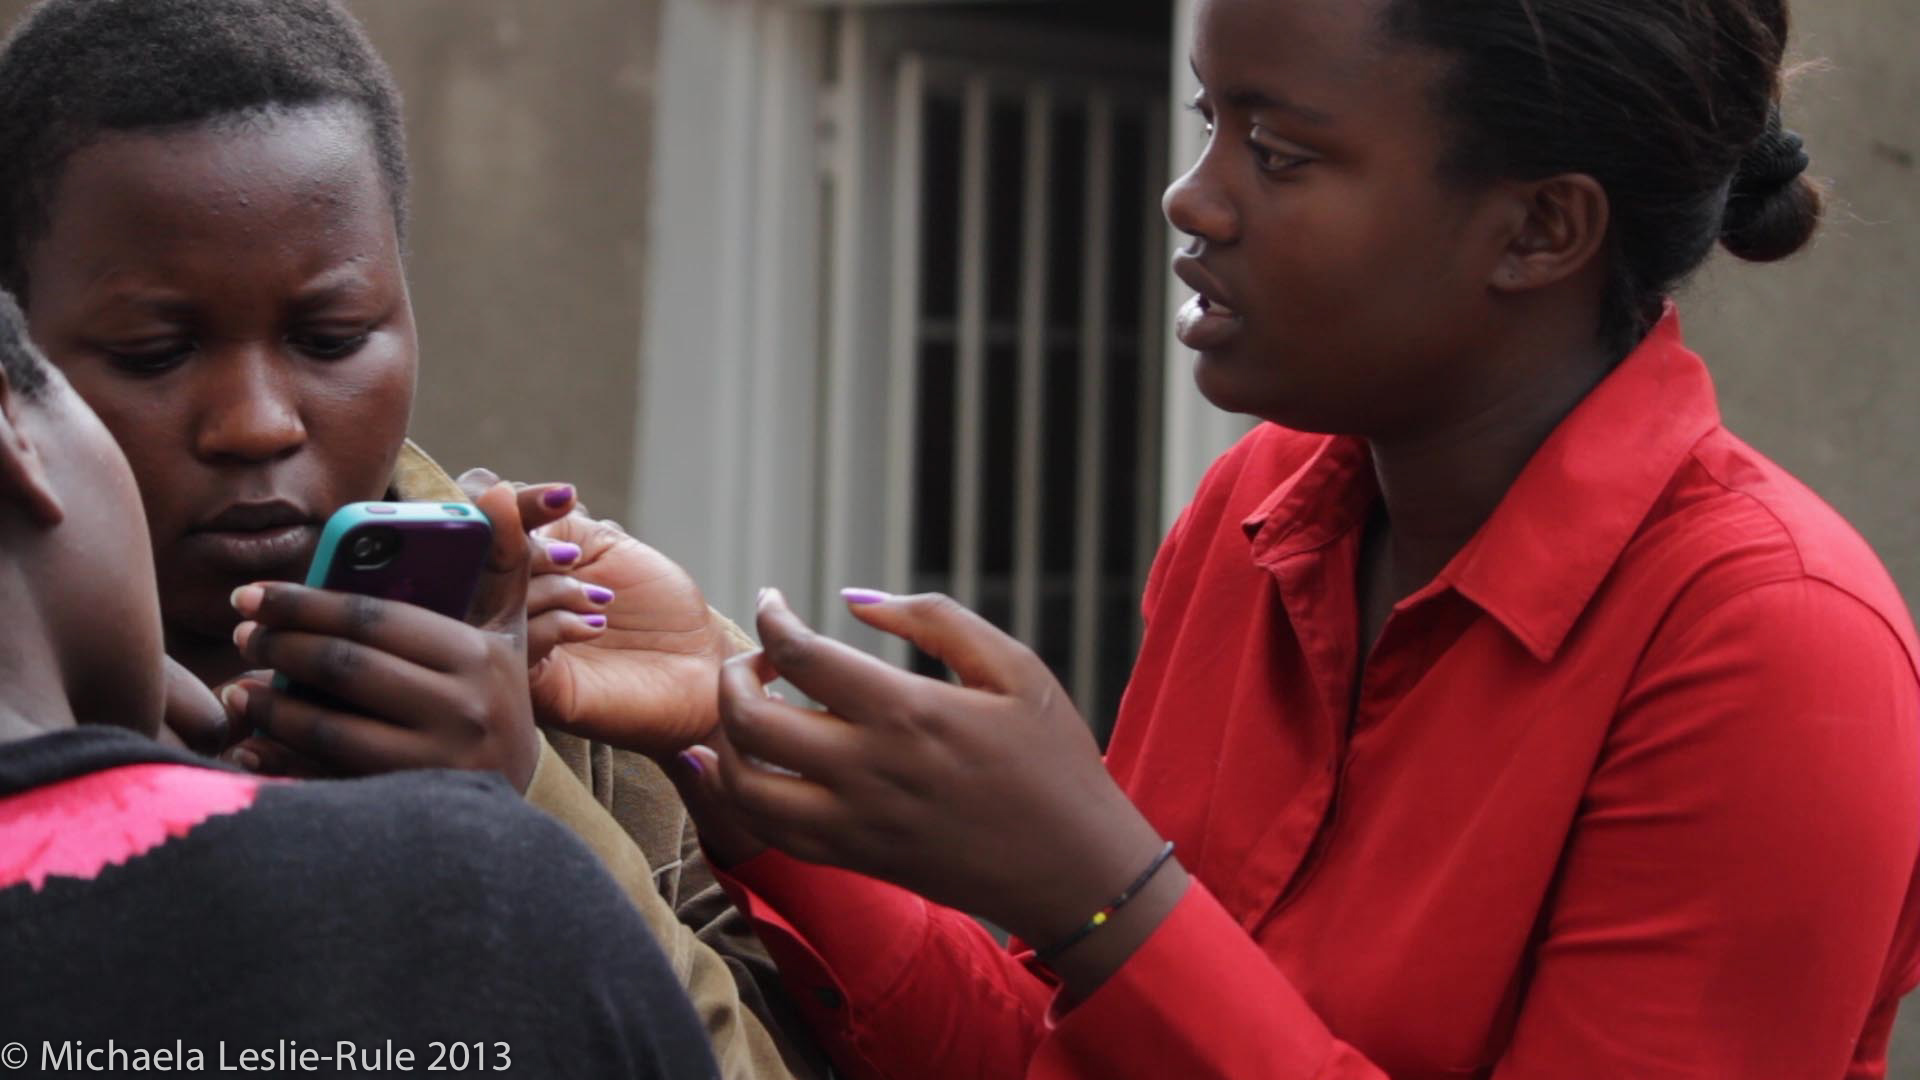 A woman talks to African girls, one is holding an iPhone